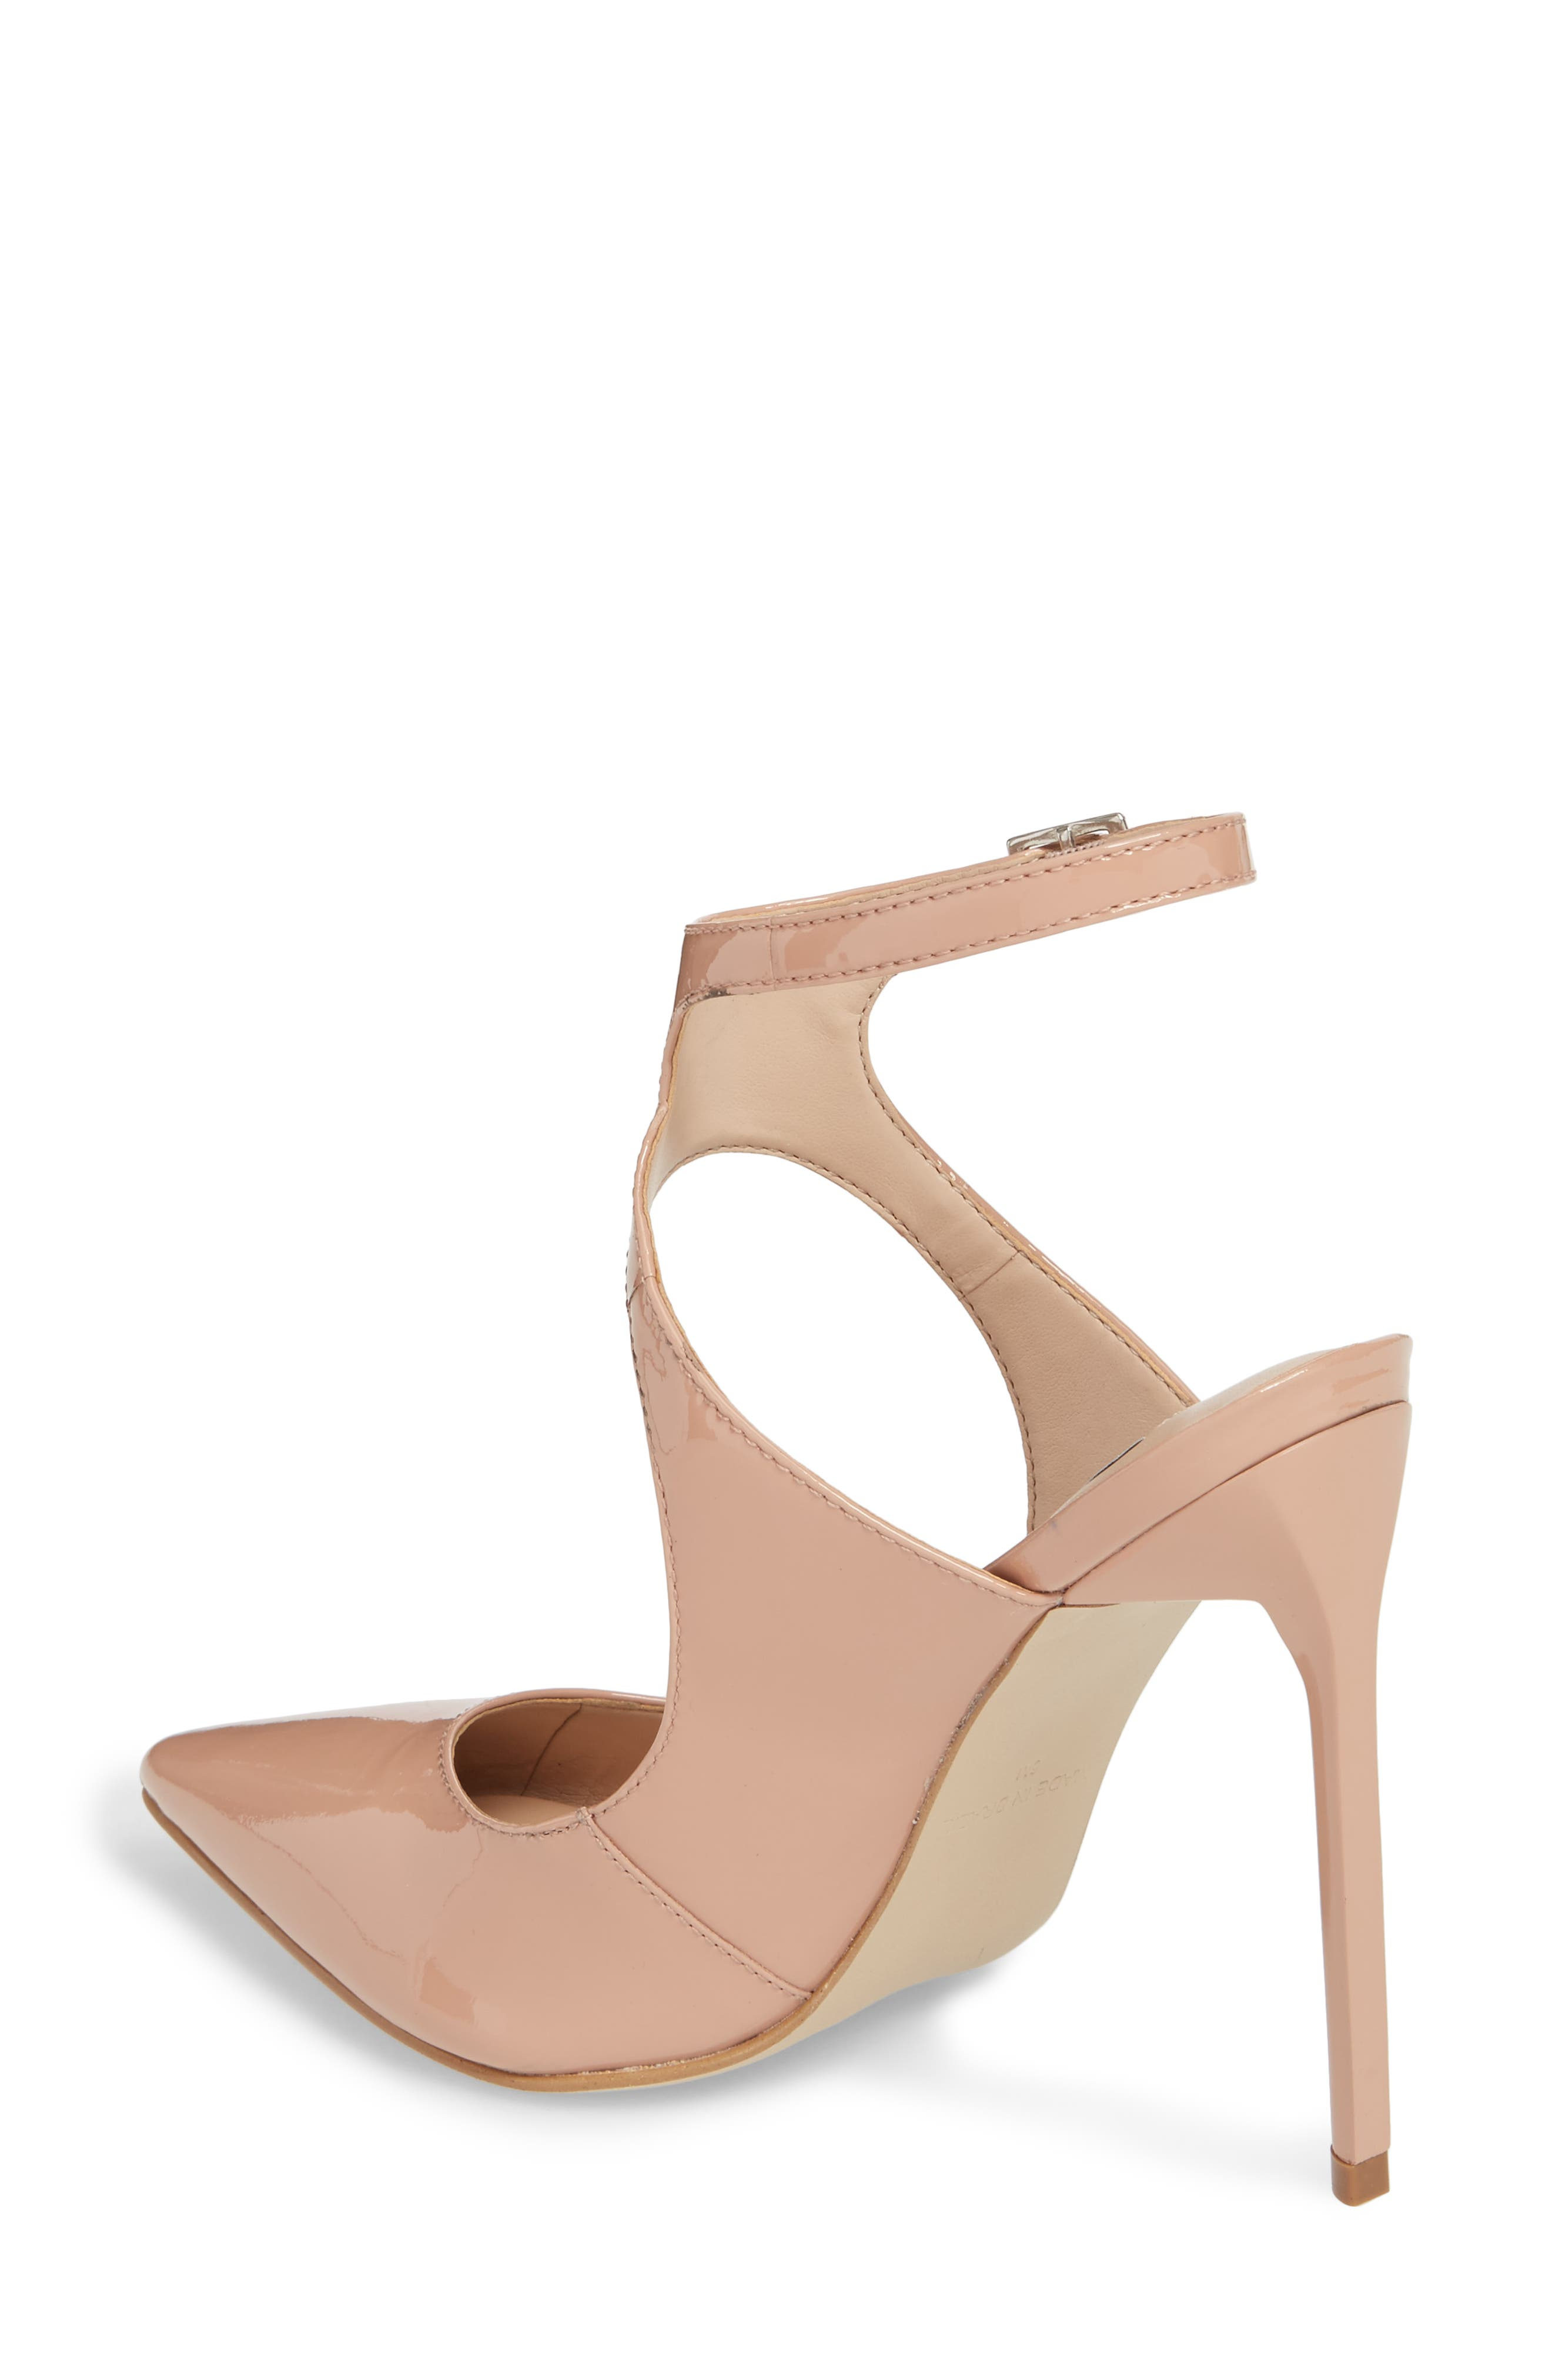 Prism Cutout Pump,                             Alternate thumbnail 5, color,